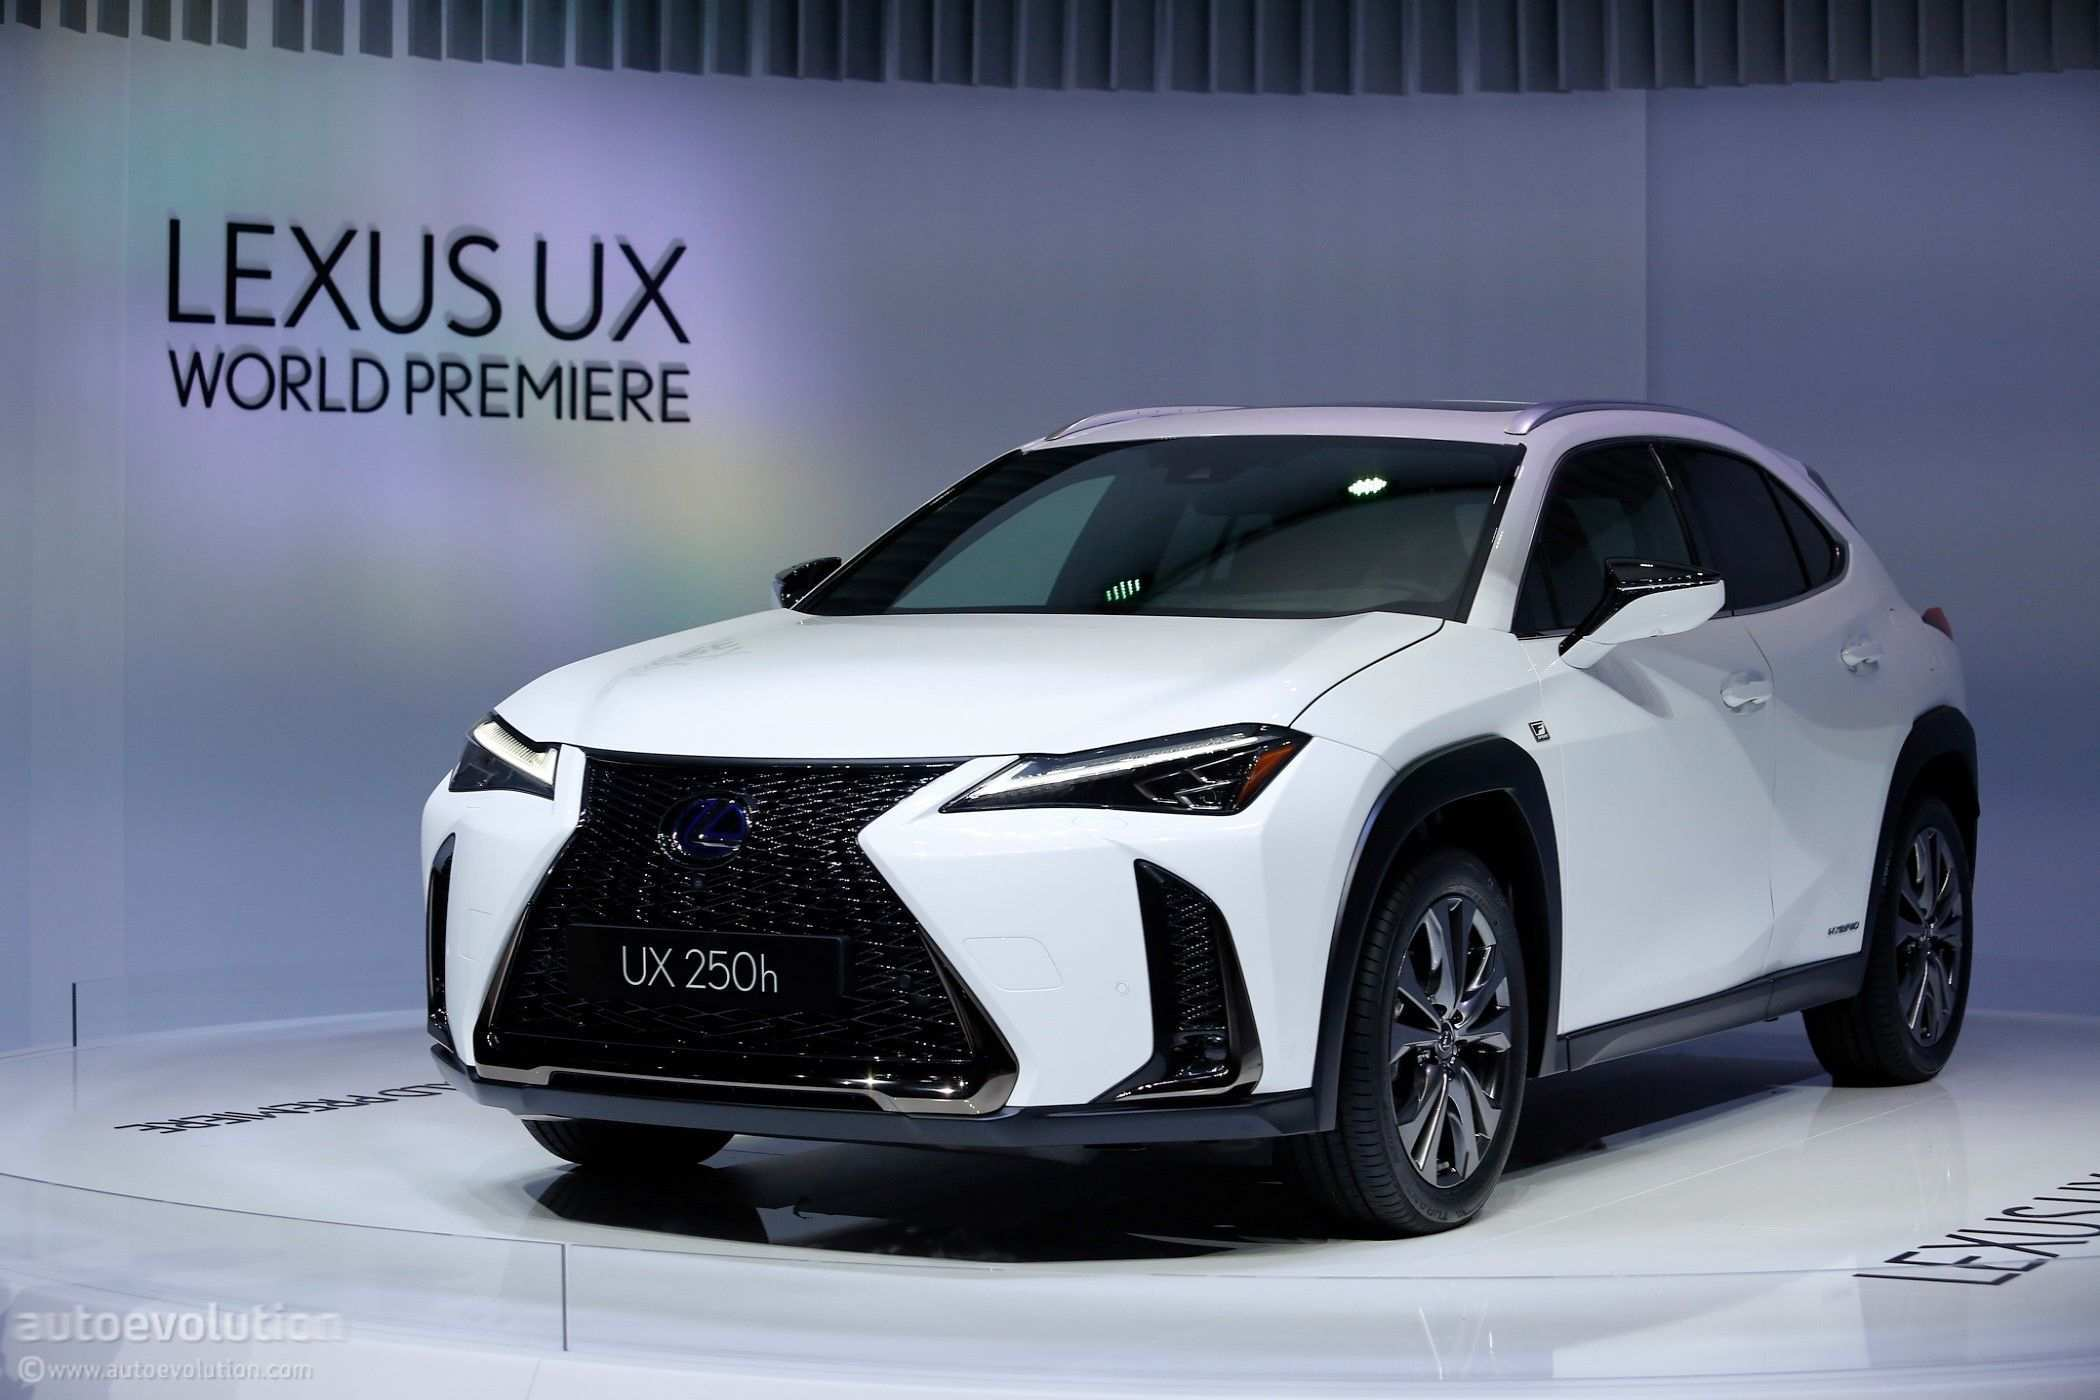 78 New Is 250 Lexus 2020 Reviews with Is 250 Lexus 2020